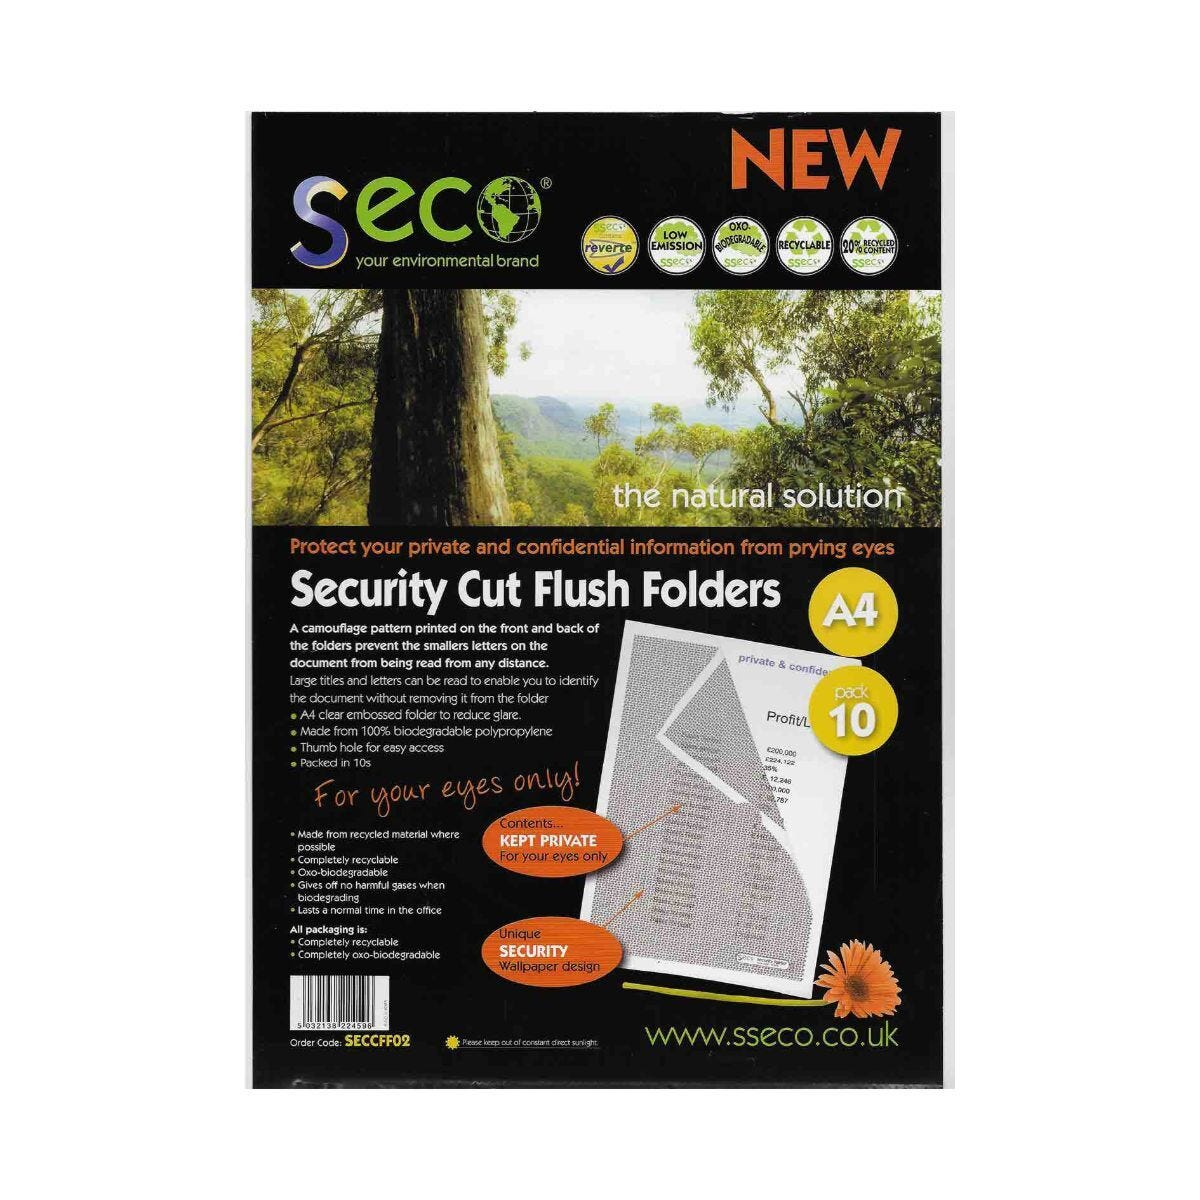 Seco Biodegradable Security Cut Flush Folder A4 Pack of 10